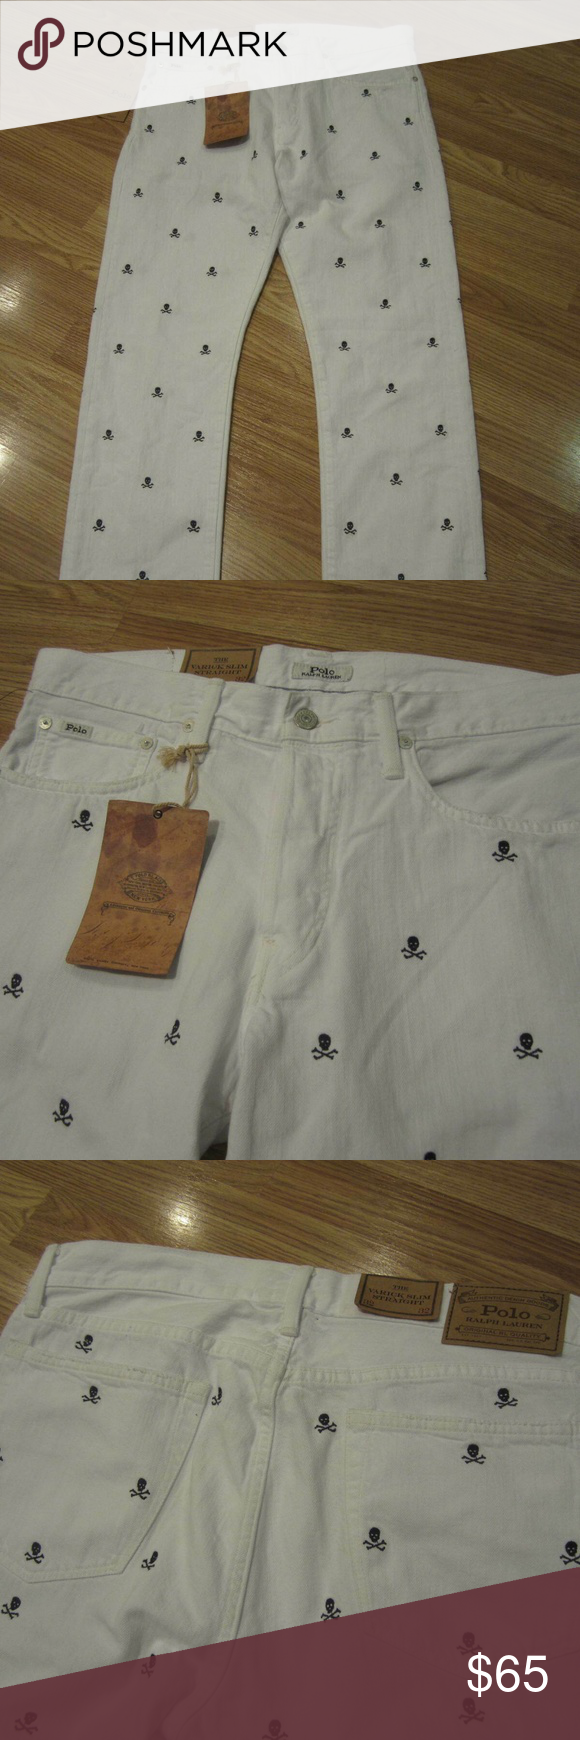 20ee30a0 Polo Ralph Lauren Varick Slim Straight Skull Jeans NEW with tags! Mens Polo  Ralph Lauren White Jeans with Skulls embroidered all over.